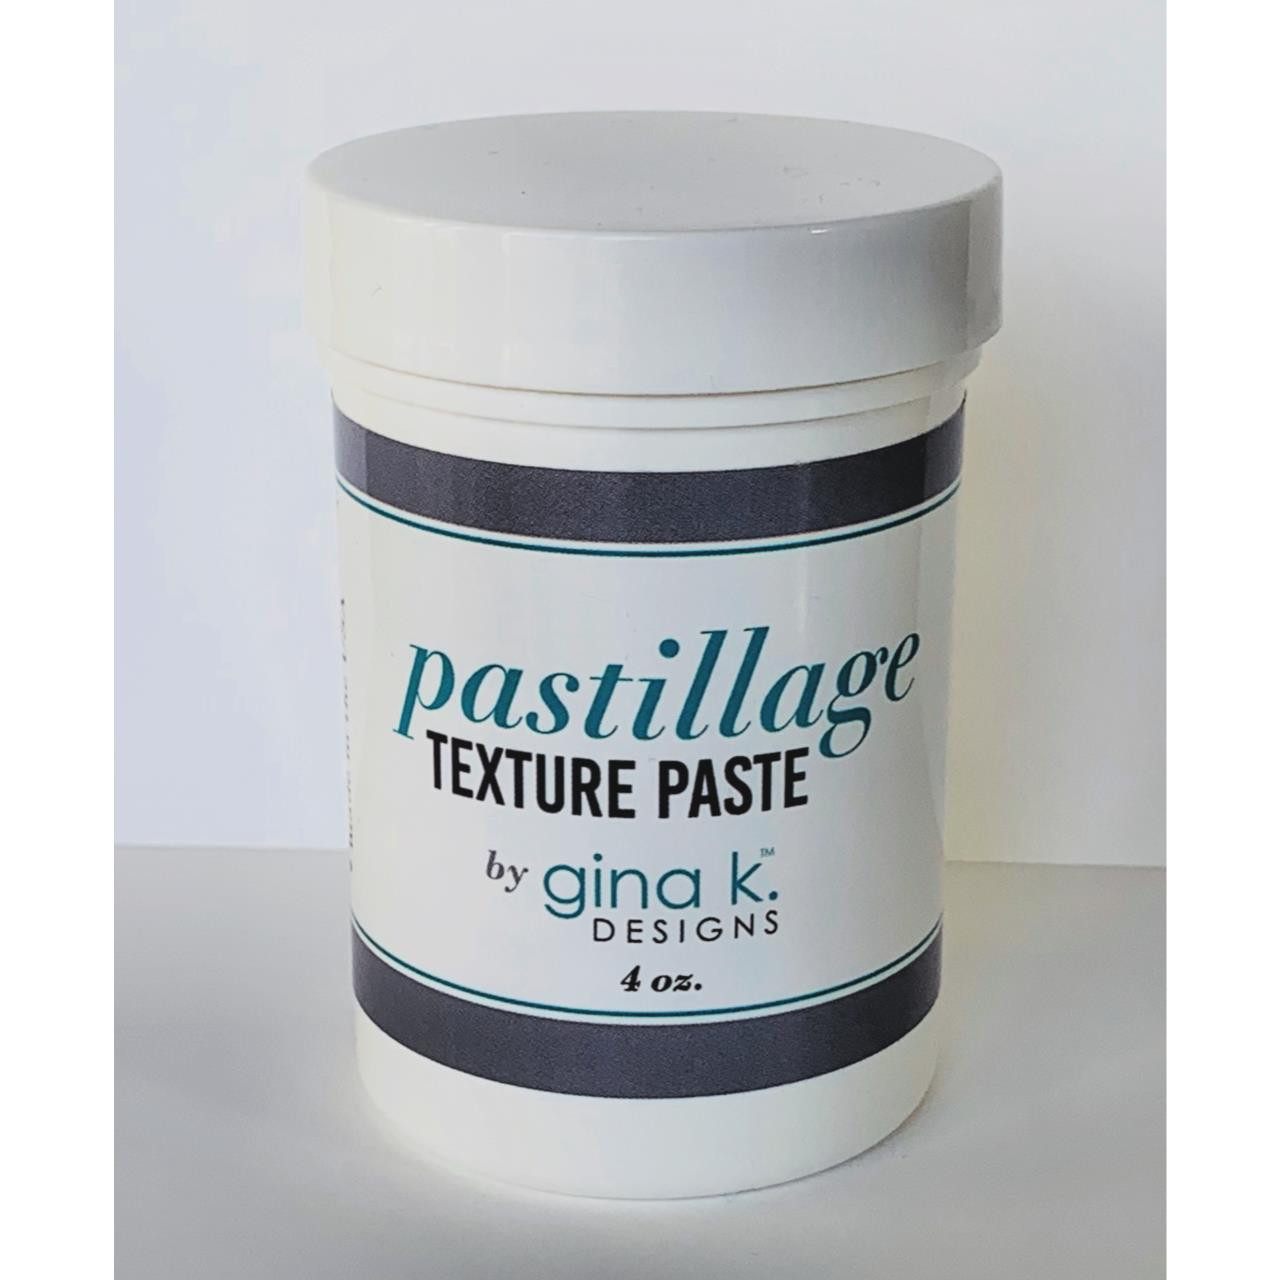 Pastillage Texture Paste, Gina K Designs - 609015541173